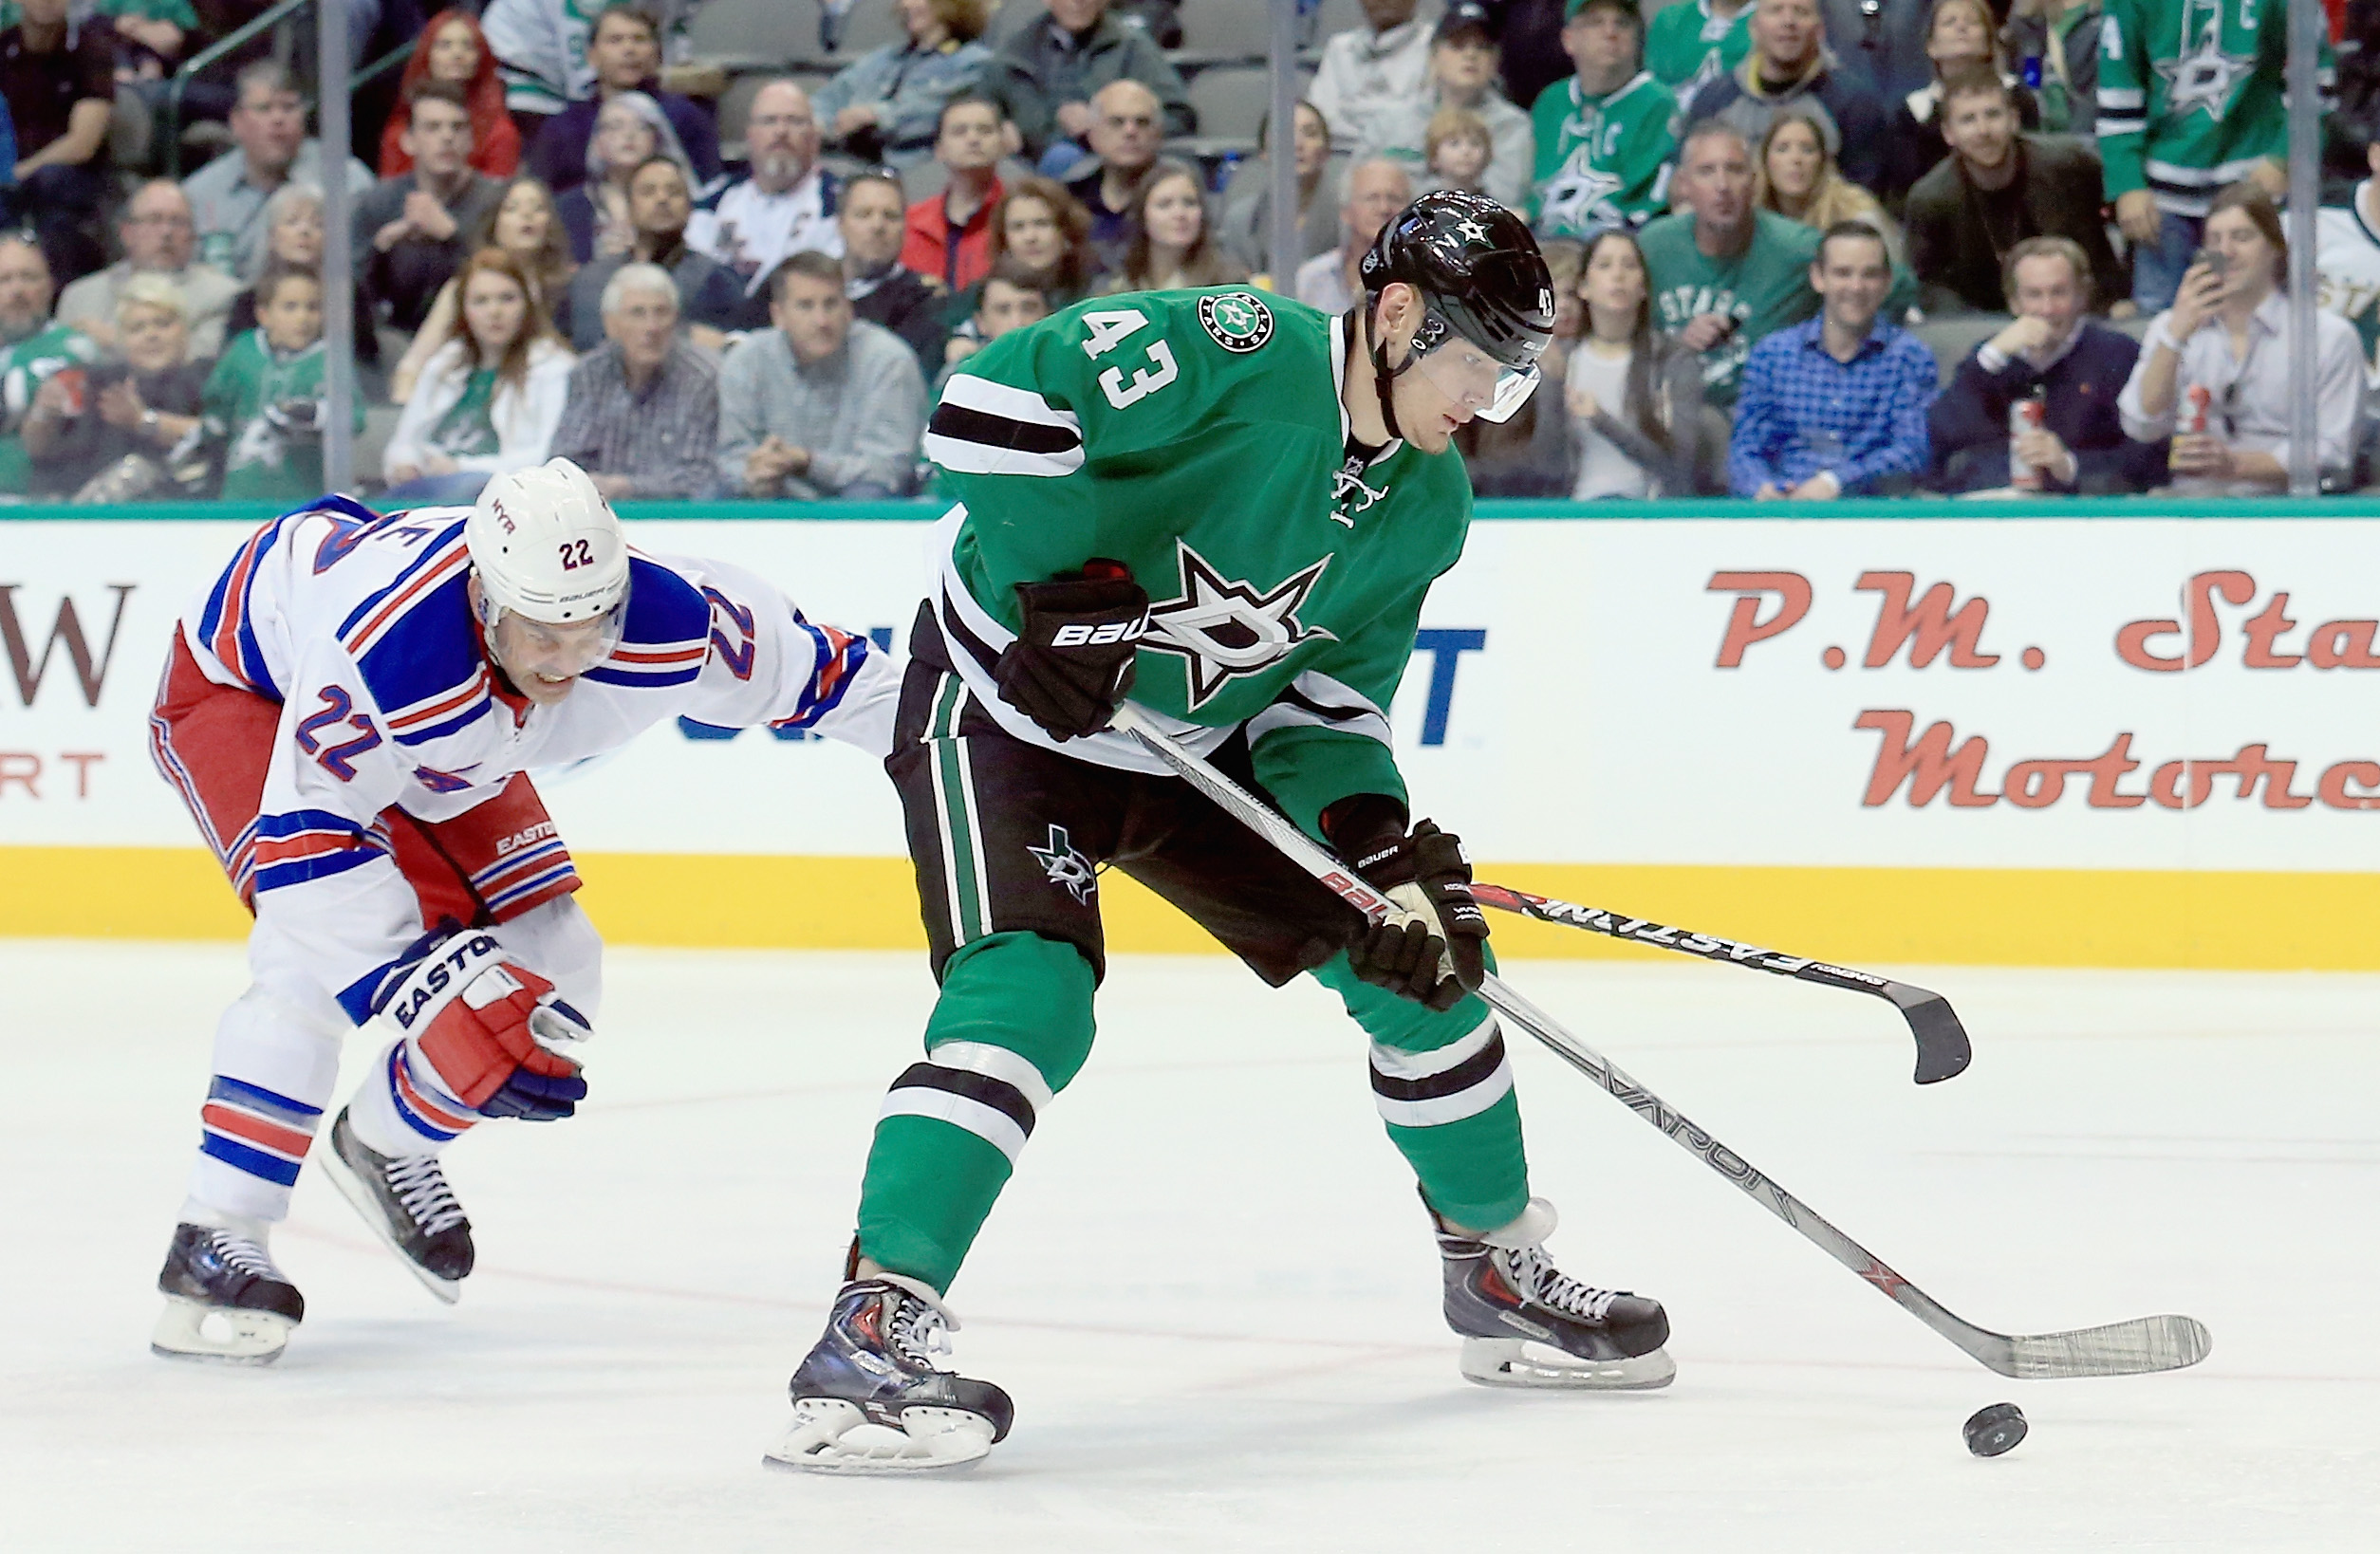 512712570-new-york-rangers-v-dallas-stars.jpg